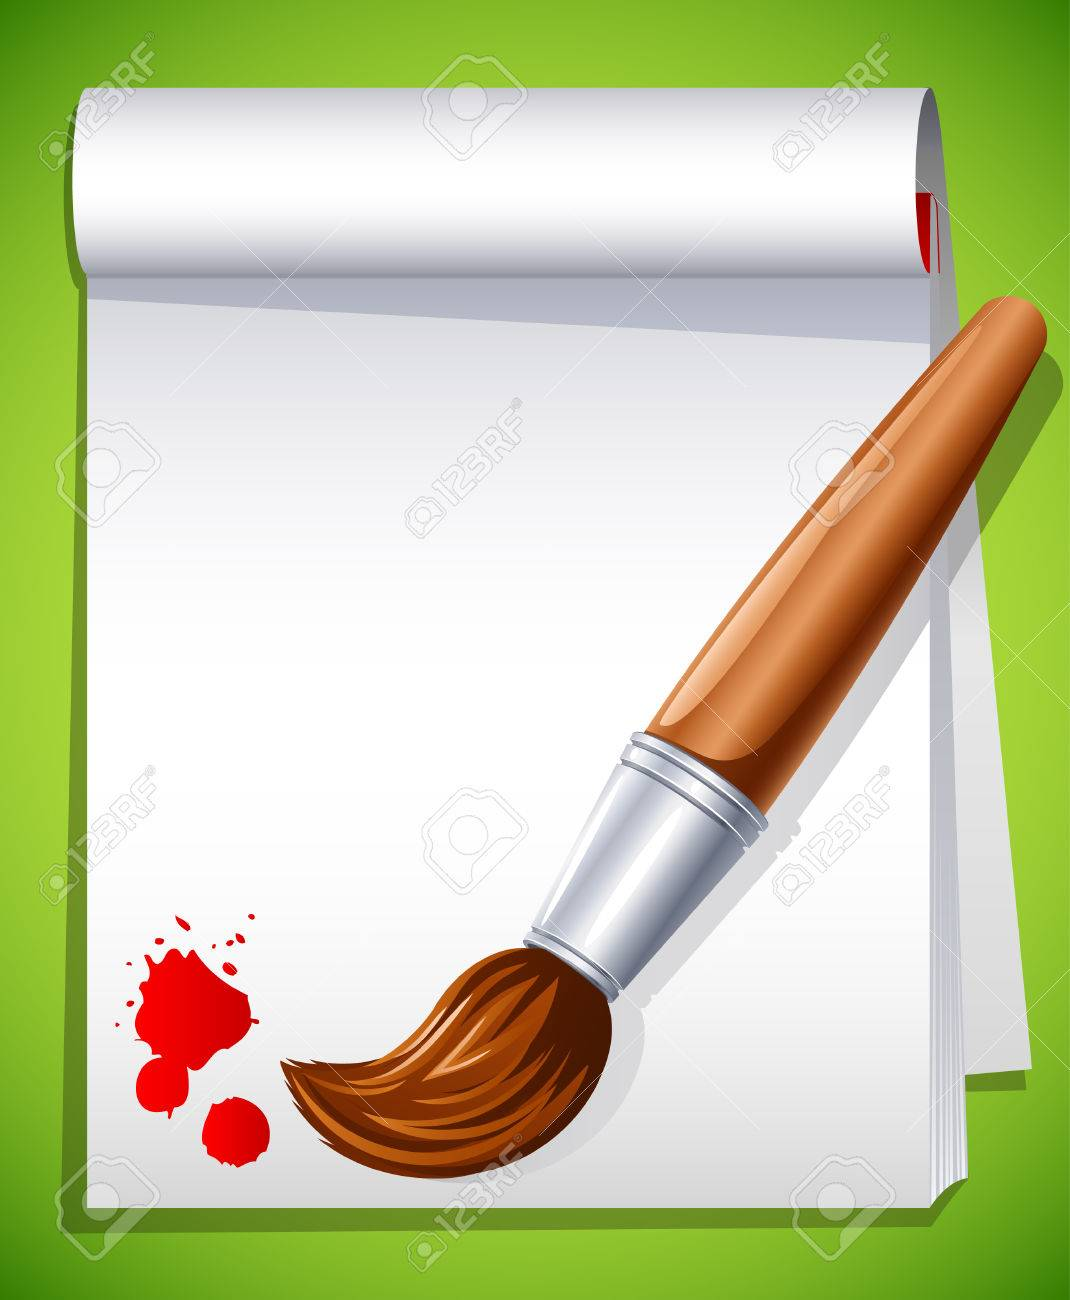 illustration - paintbrush on the drawing pad Stock Vector - 7066663